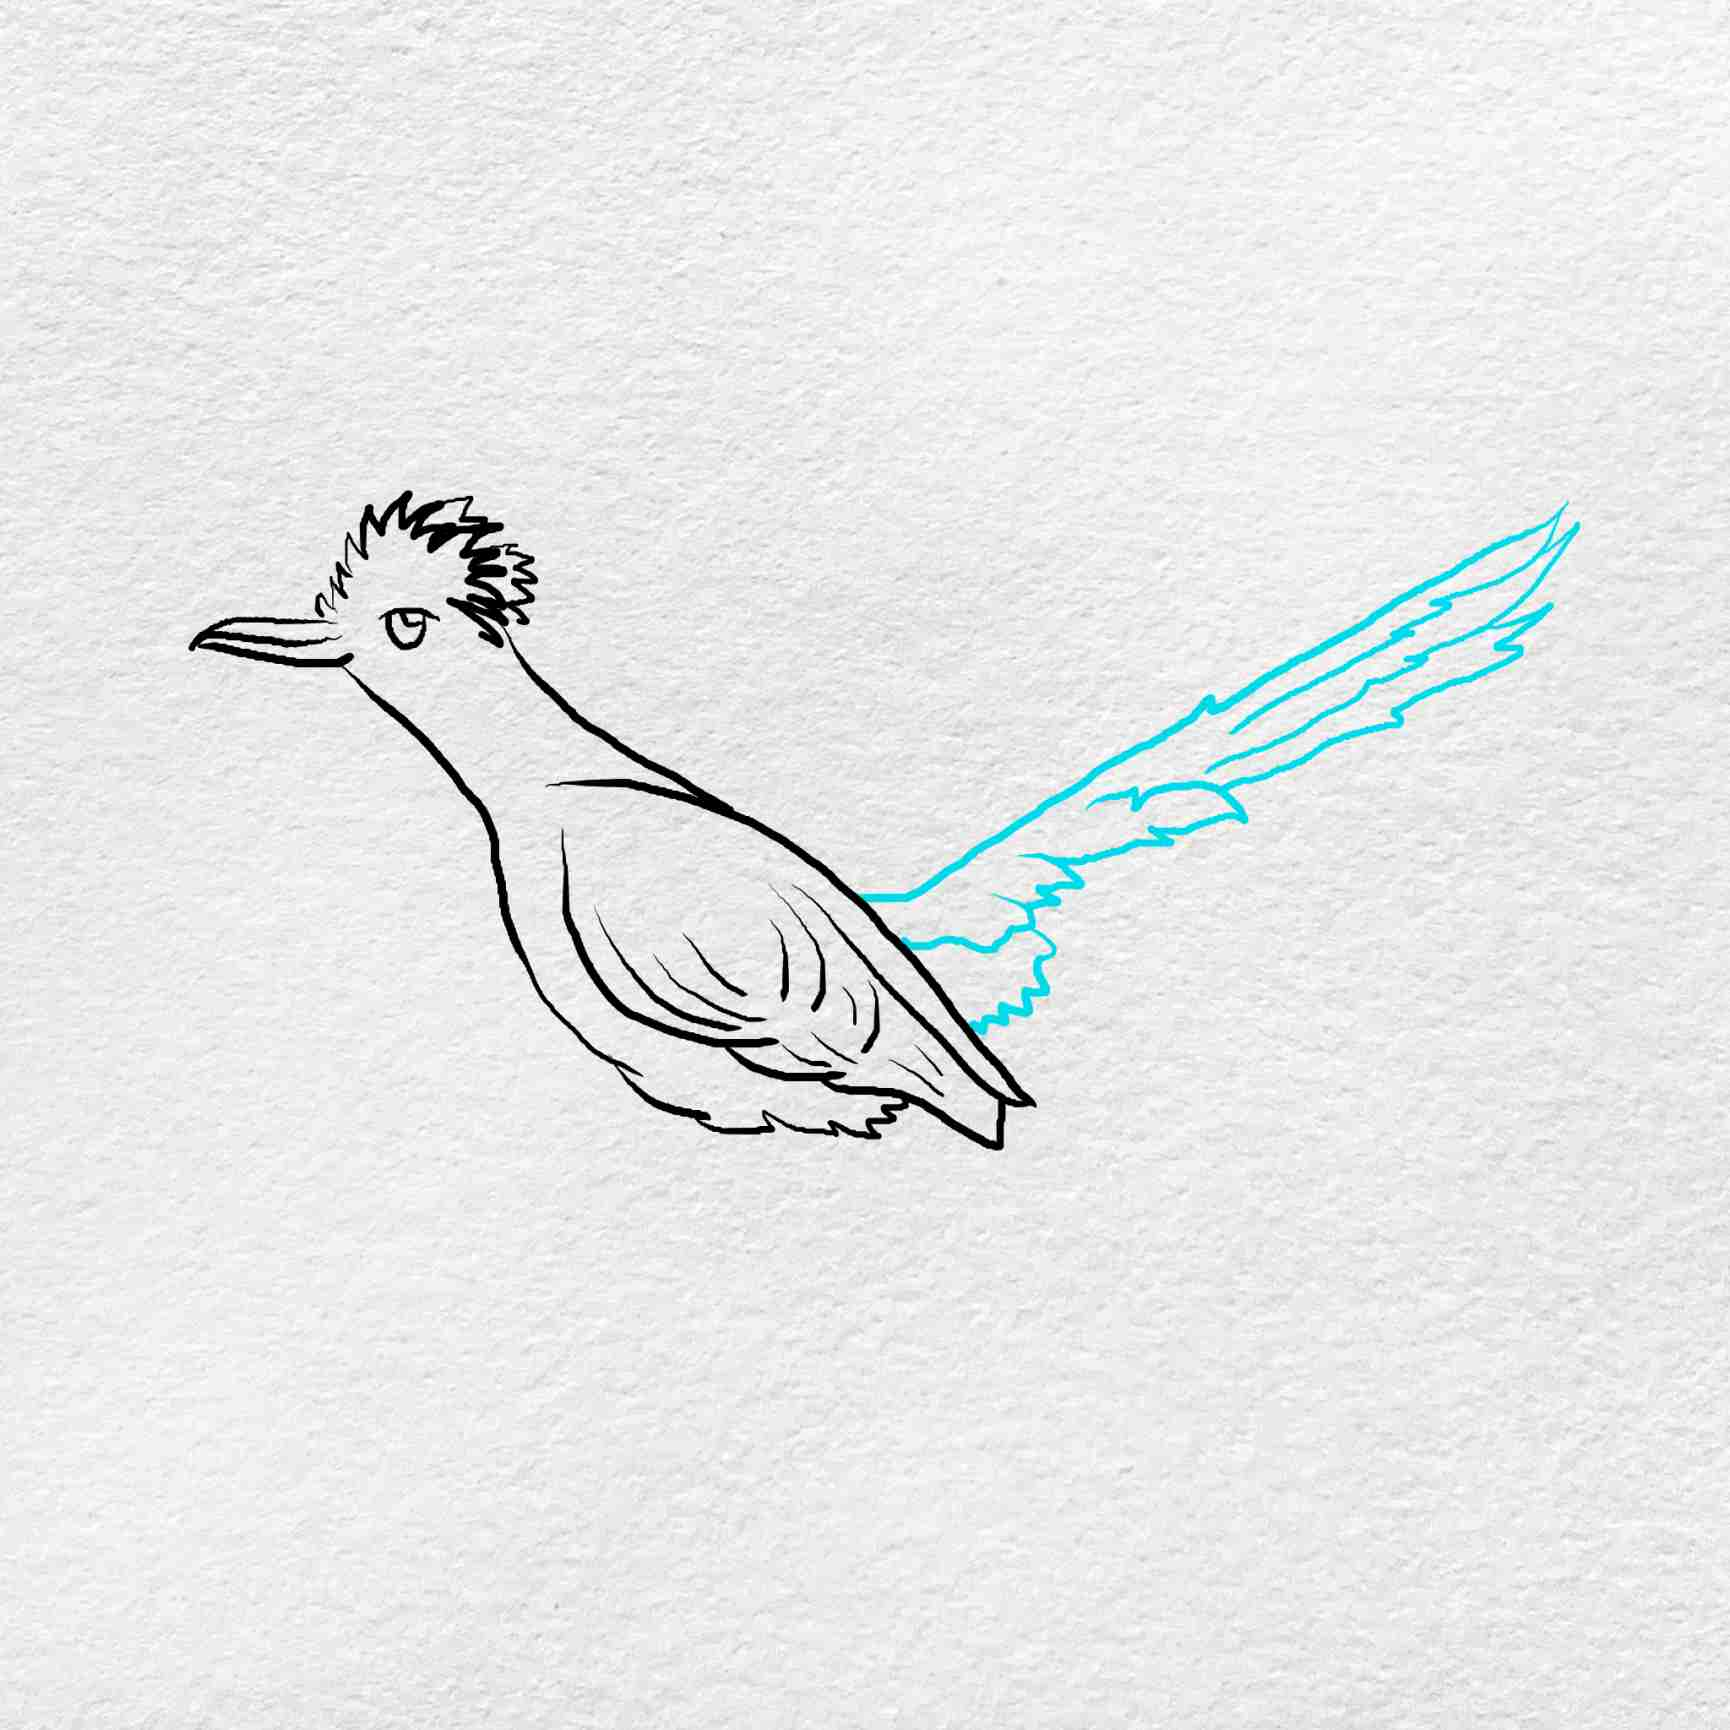 How To Draw A Roadrunner: Step 4